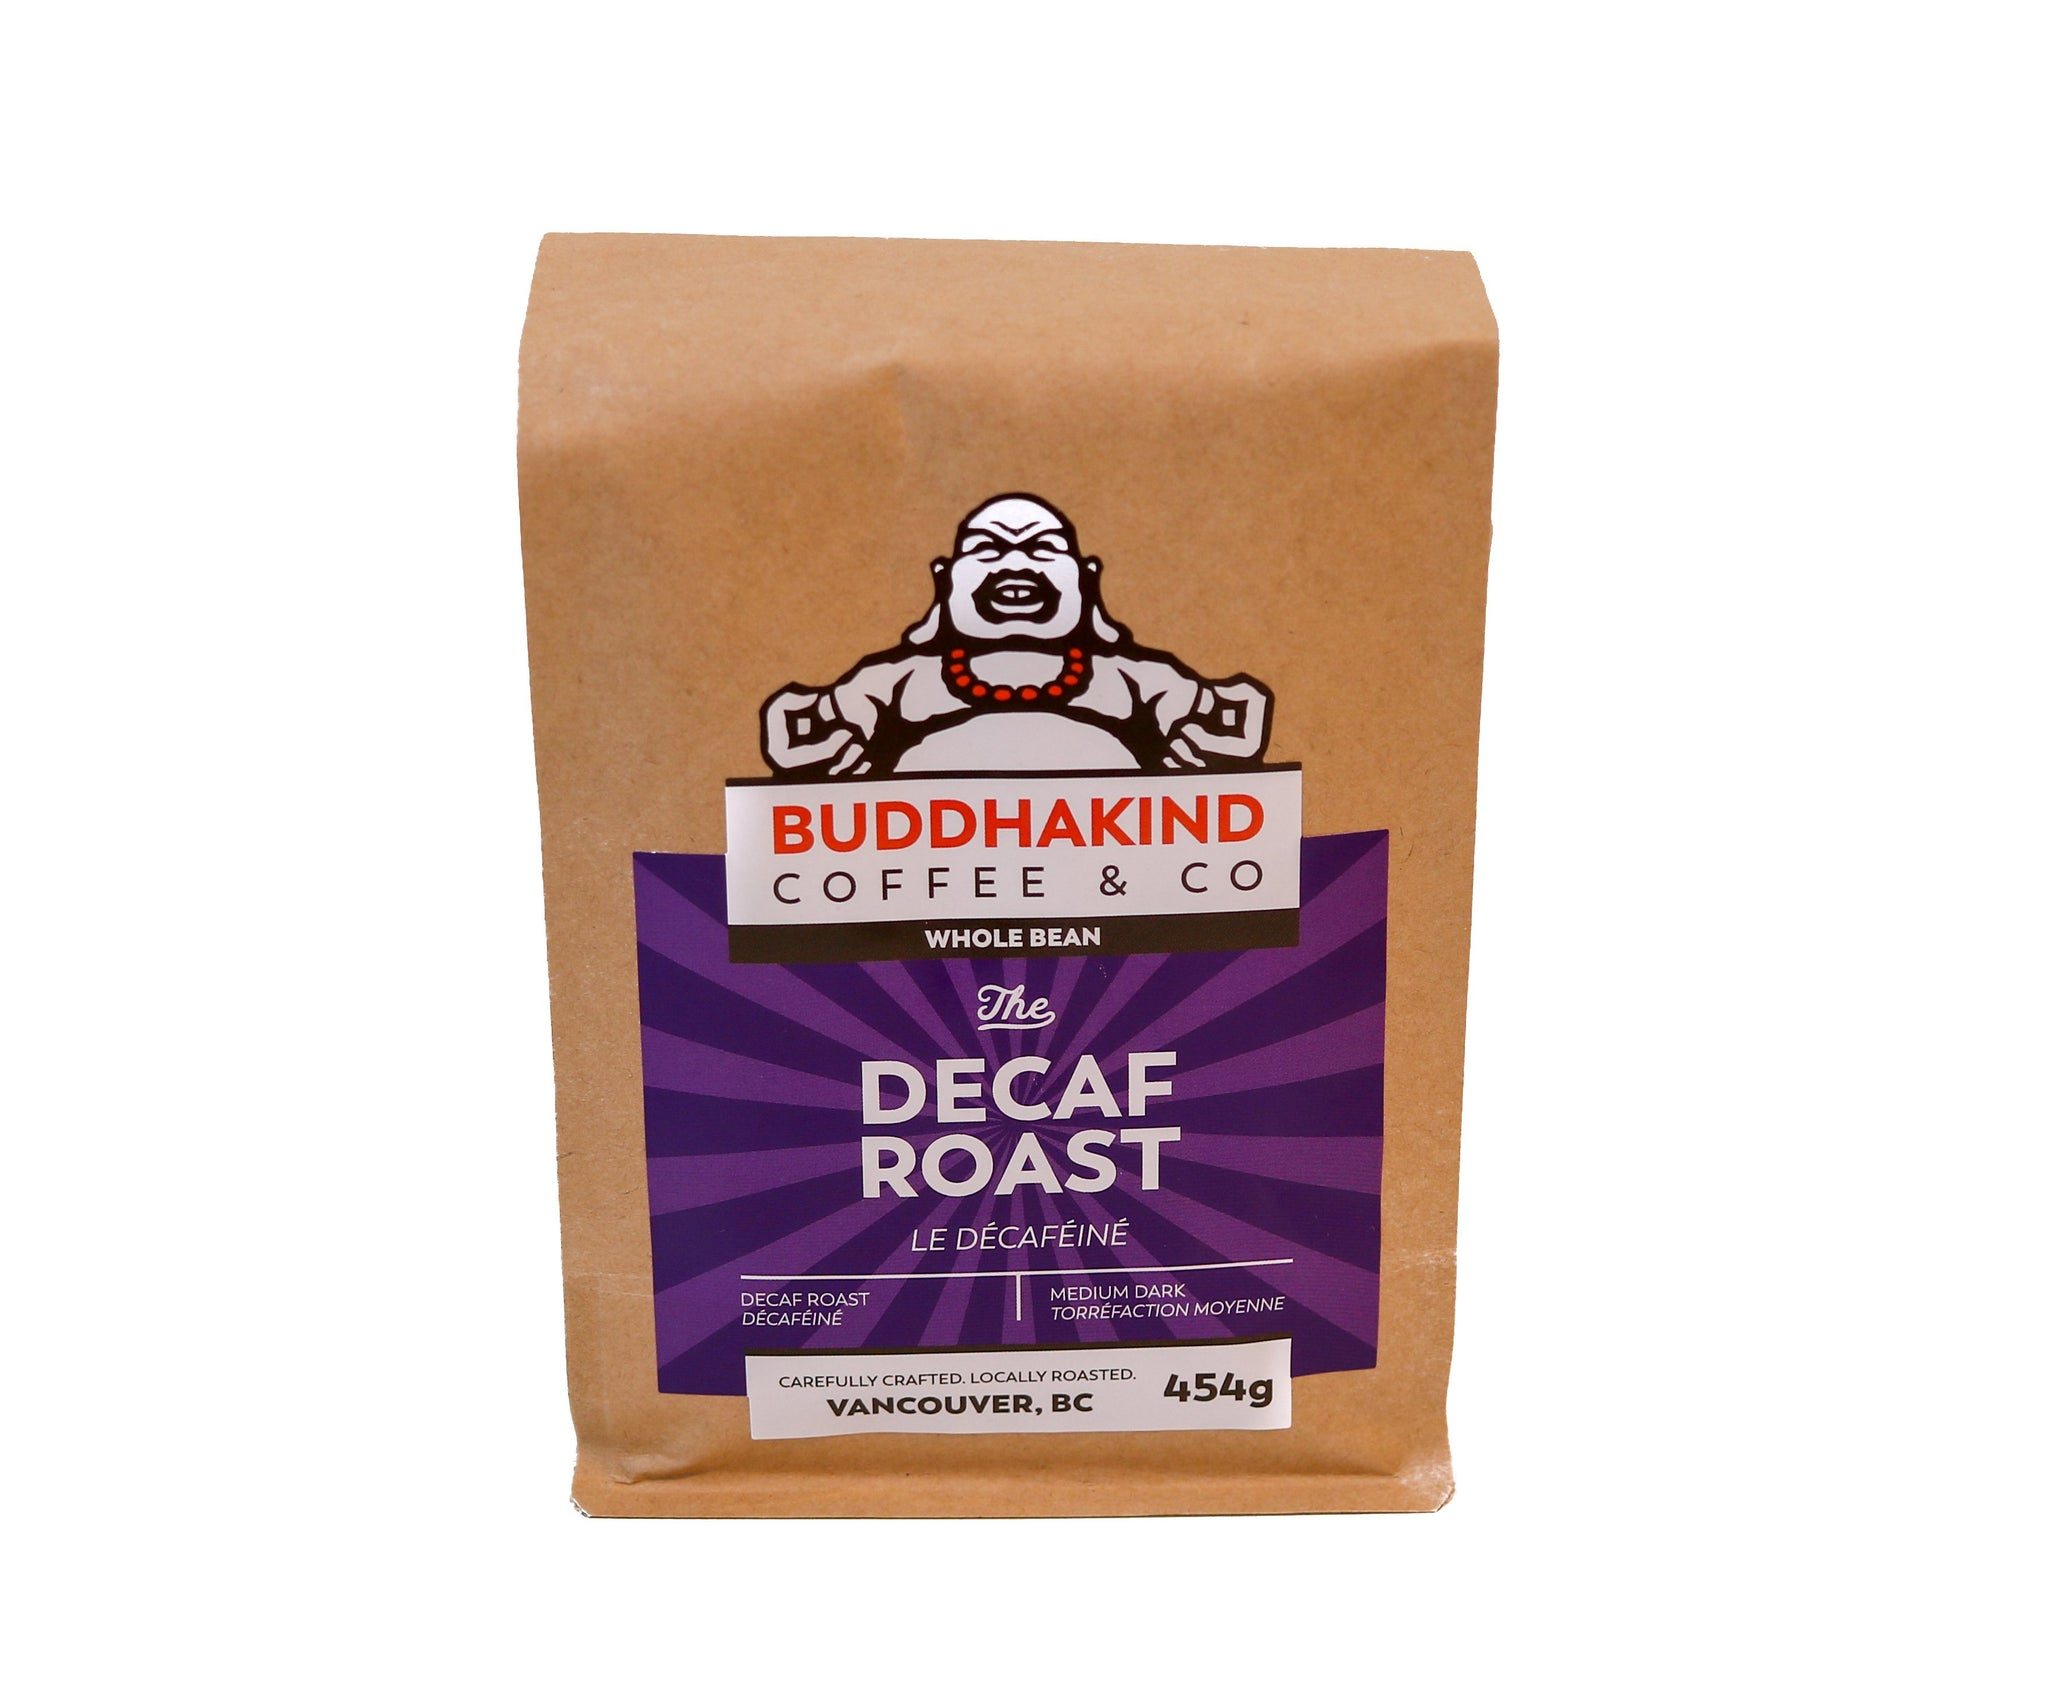 Buddhakind Decaf  - 1lb bag - Whole Bean